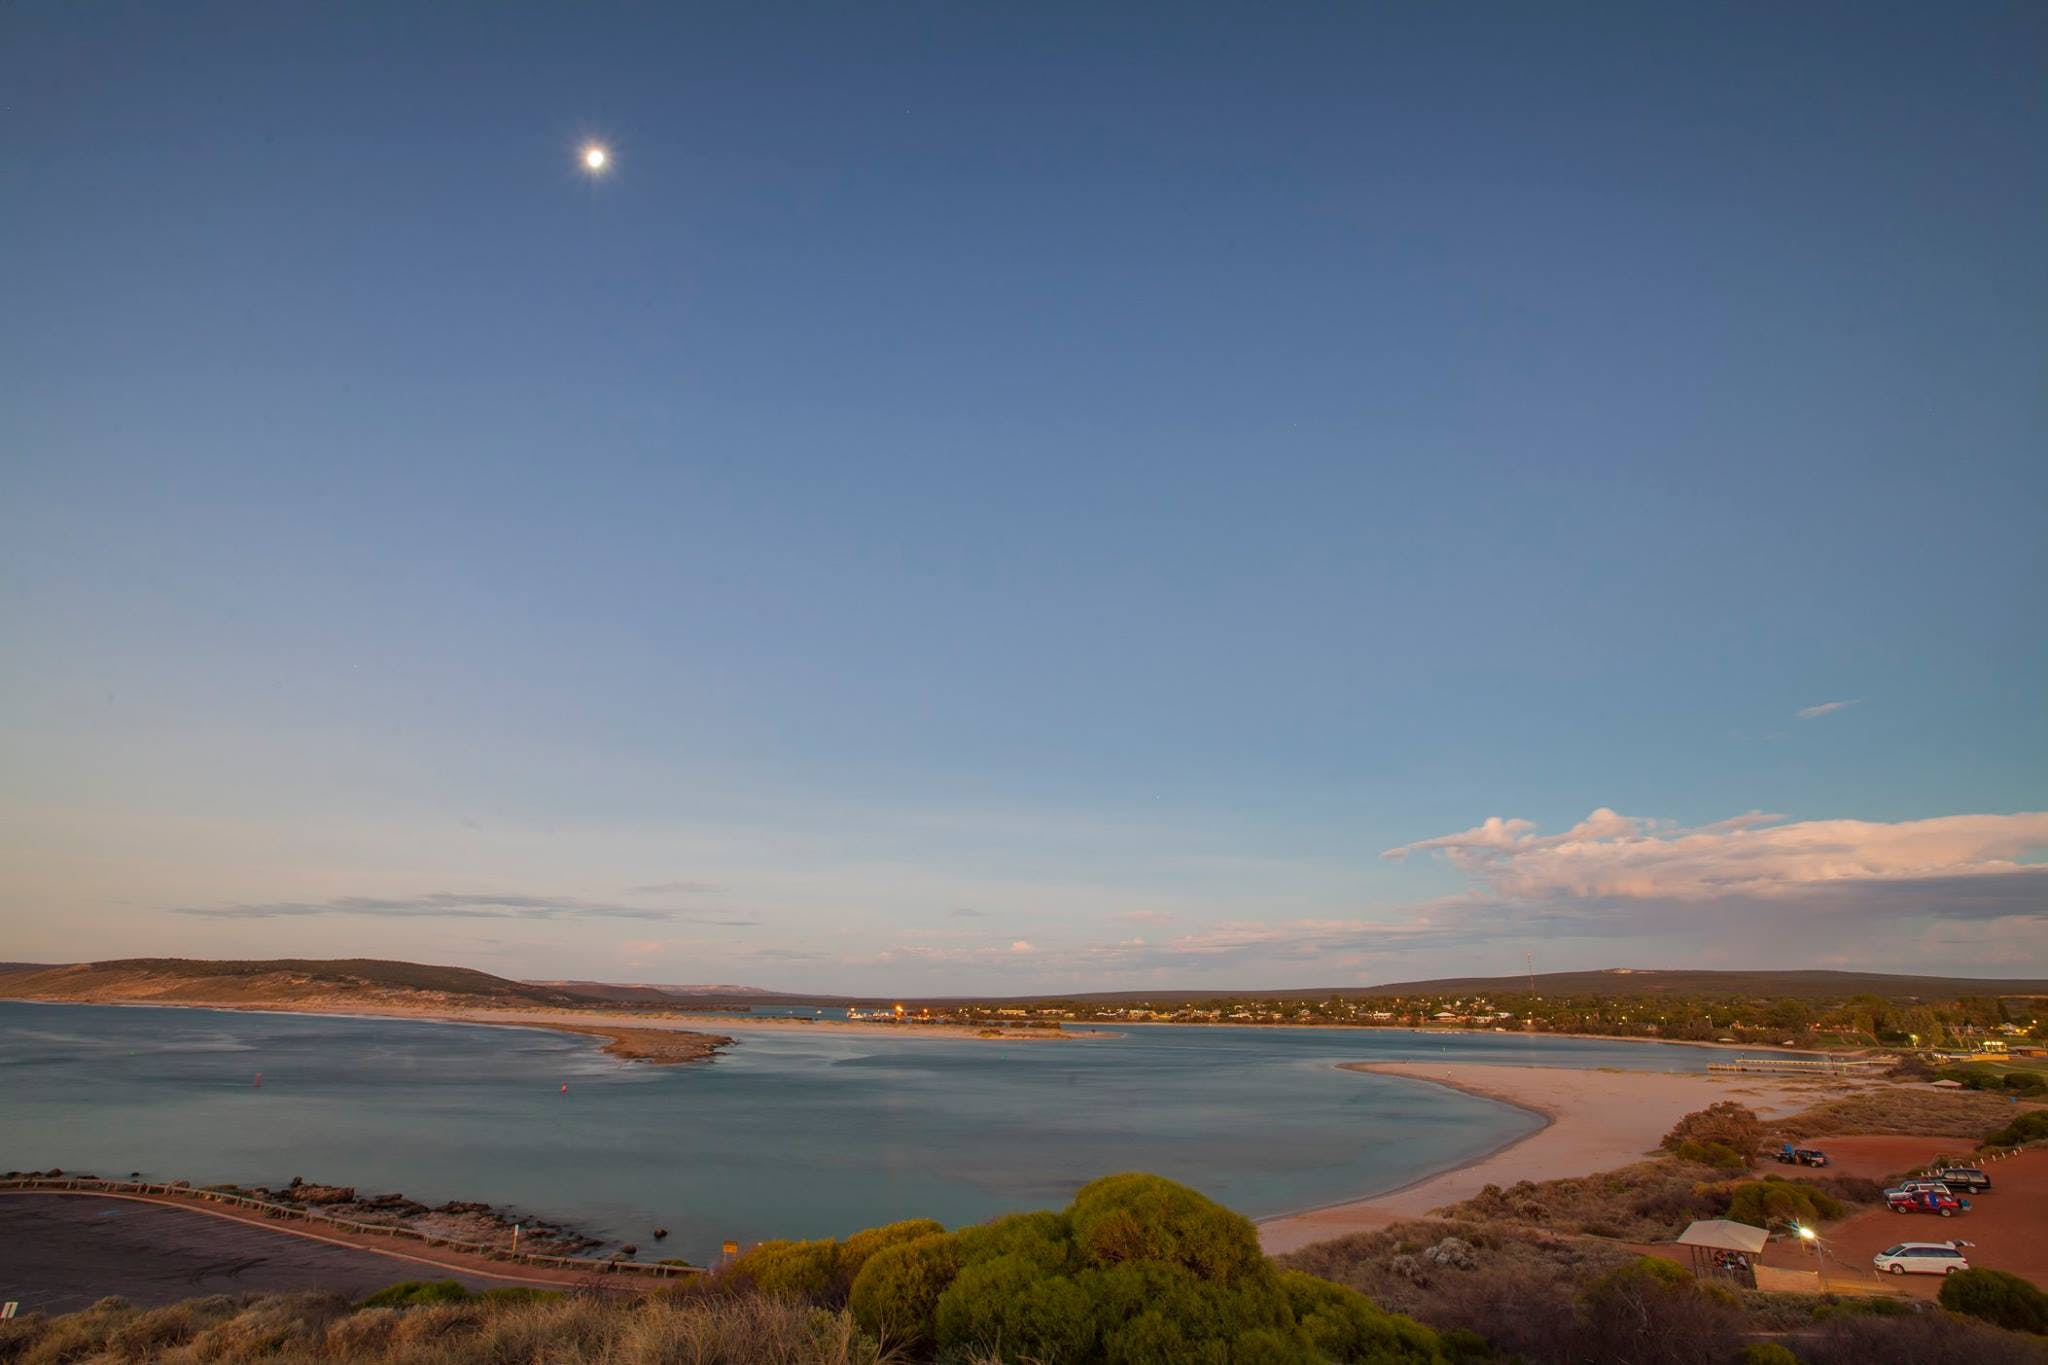 Where the Murchison River meets the Indian Ocean, Kalbarri in Western Australia (WA) is a favourite holiday playground 1